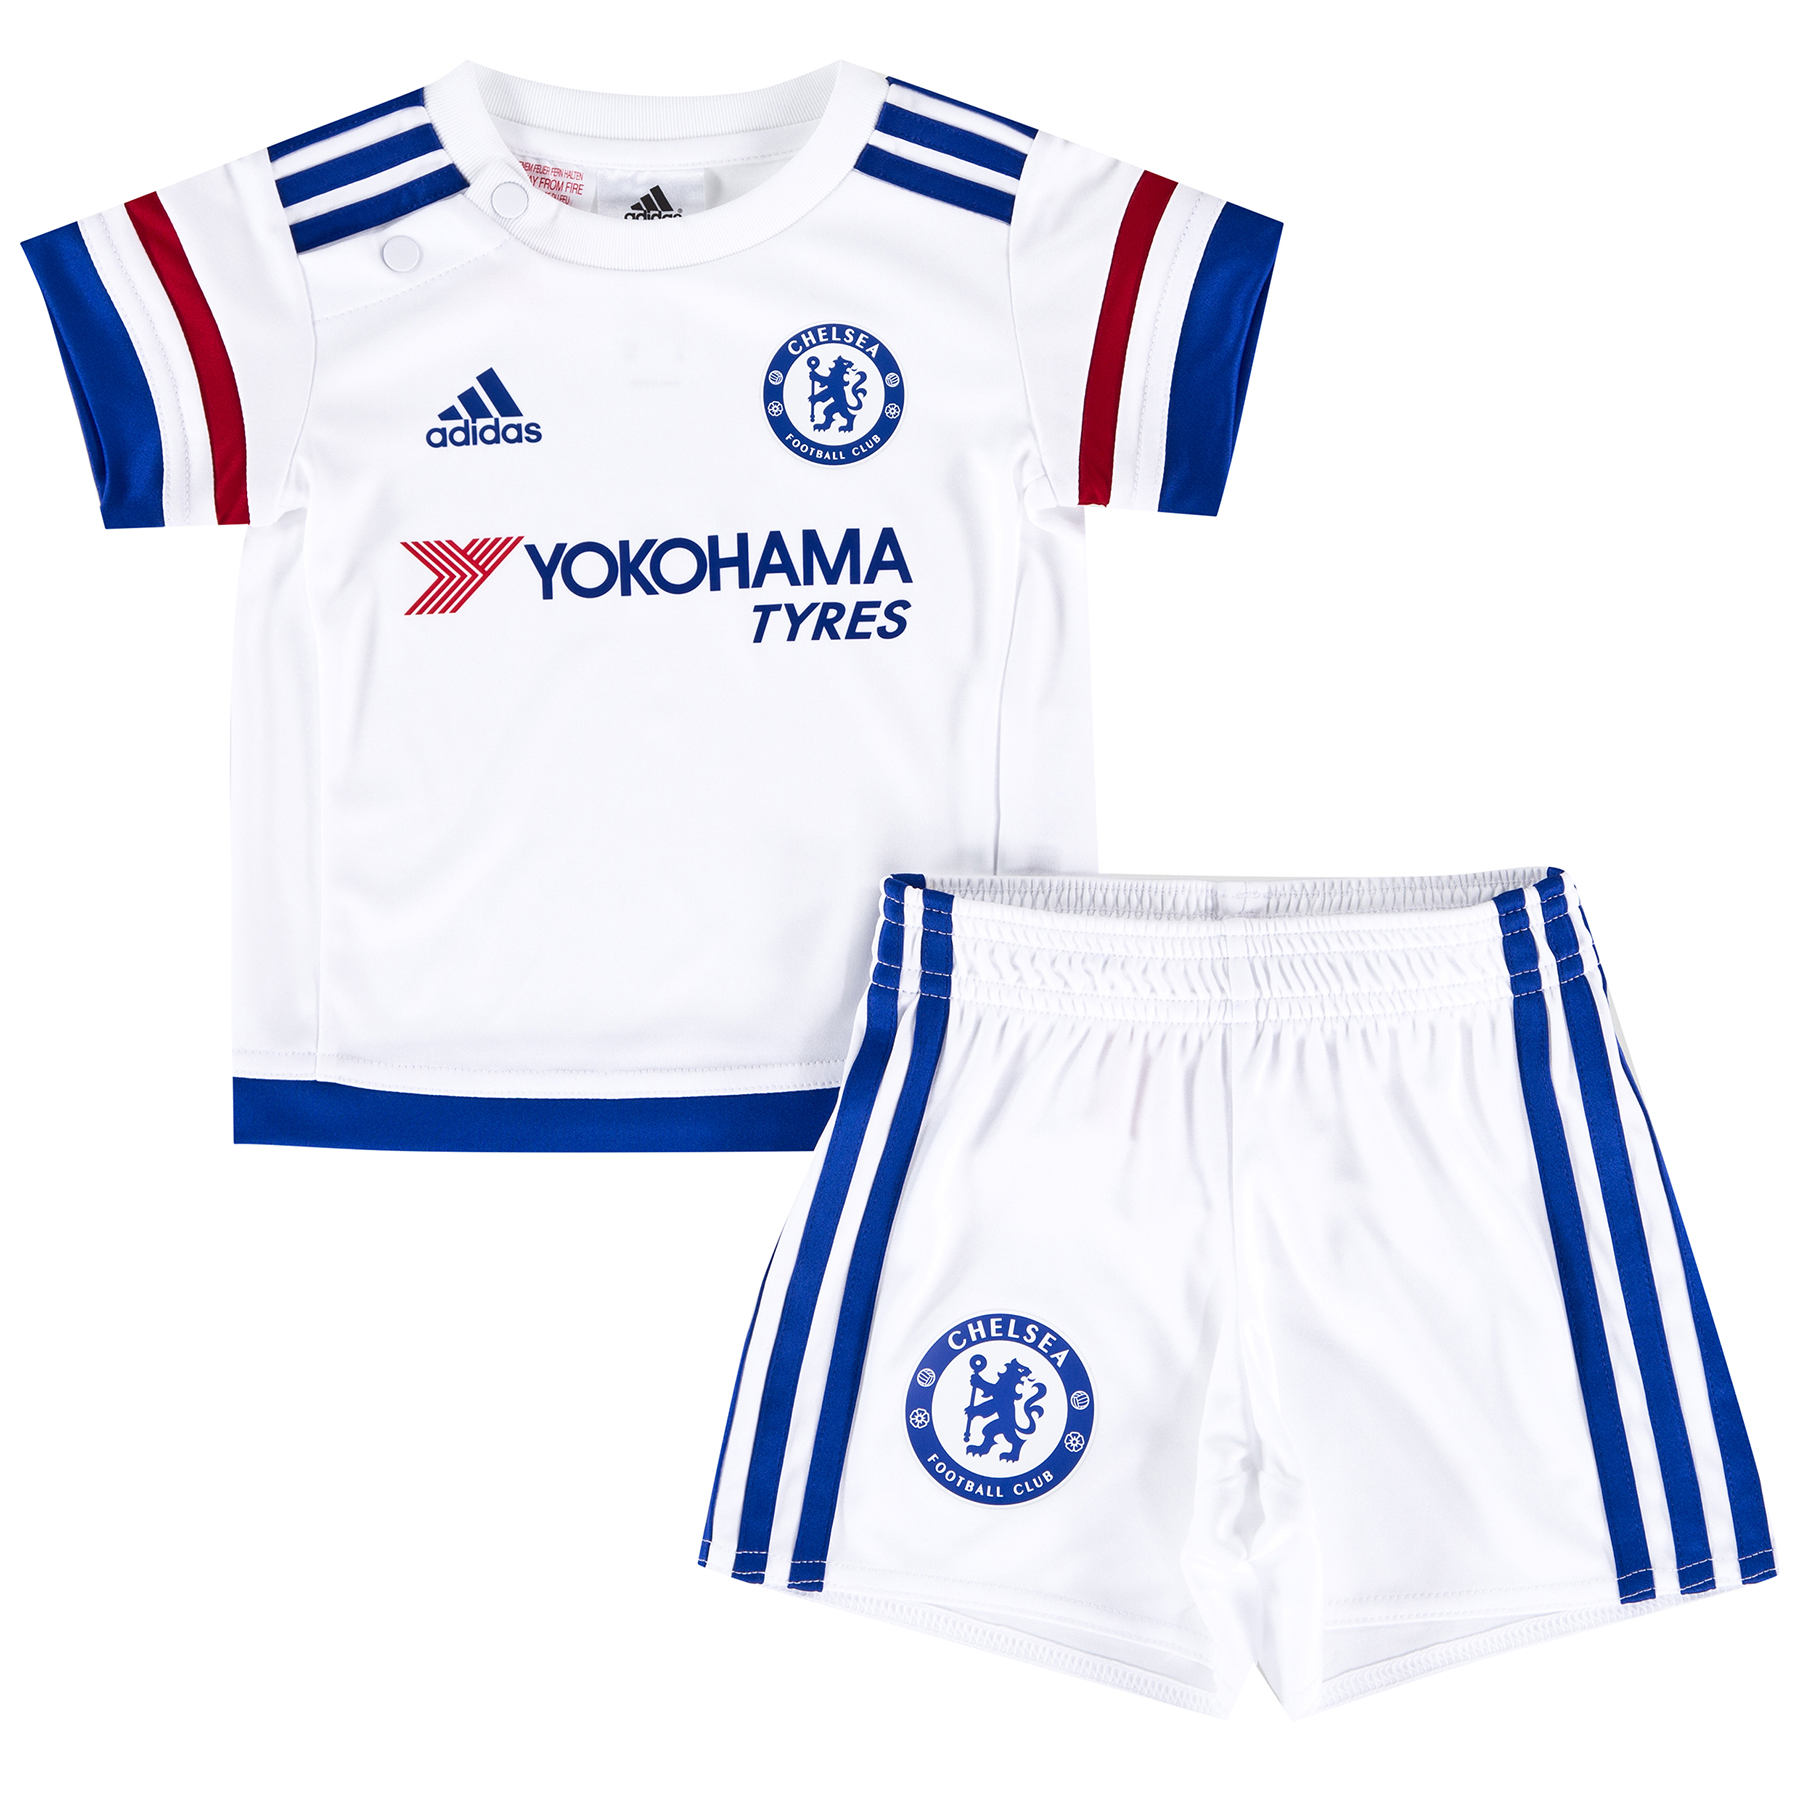 Chelsea  Away Baby Kit 2015/16 Even the youngest of fans can show their support for their favourite club with the new Chelsea Away Baby Kit for the 2015/16 season. The CFC Away KitThe Away Kit mirrors the colour story of the Home Kit in an unseen way: Red, White and Chelsea Blue stripes on the arms. The fingerprint label adds value and an authentic story whilst the fingerprint represents the identity of all Chelsea fans. Dress your baby in a mini version of the kit worn by the likes of Champions Diego Costa, Cesc Fabregas and Eden Hazard! Benefits CLIMACOOL® Provides heat and moisture management